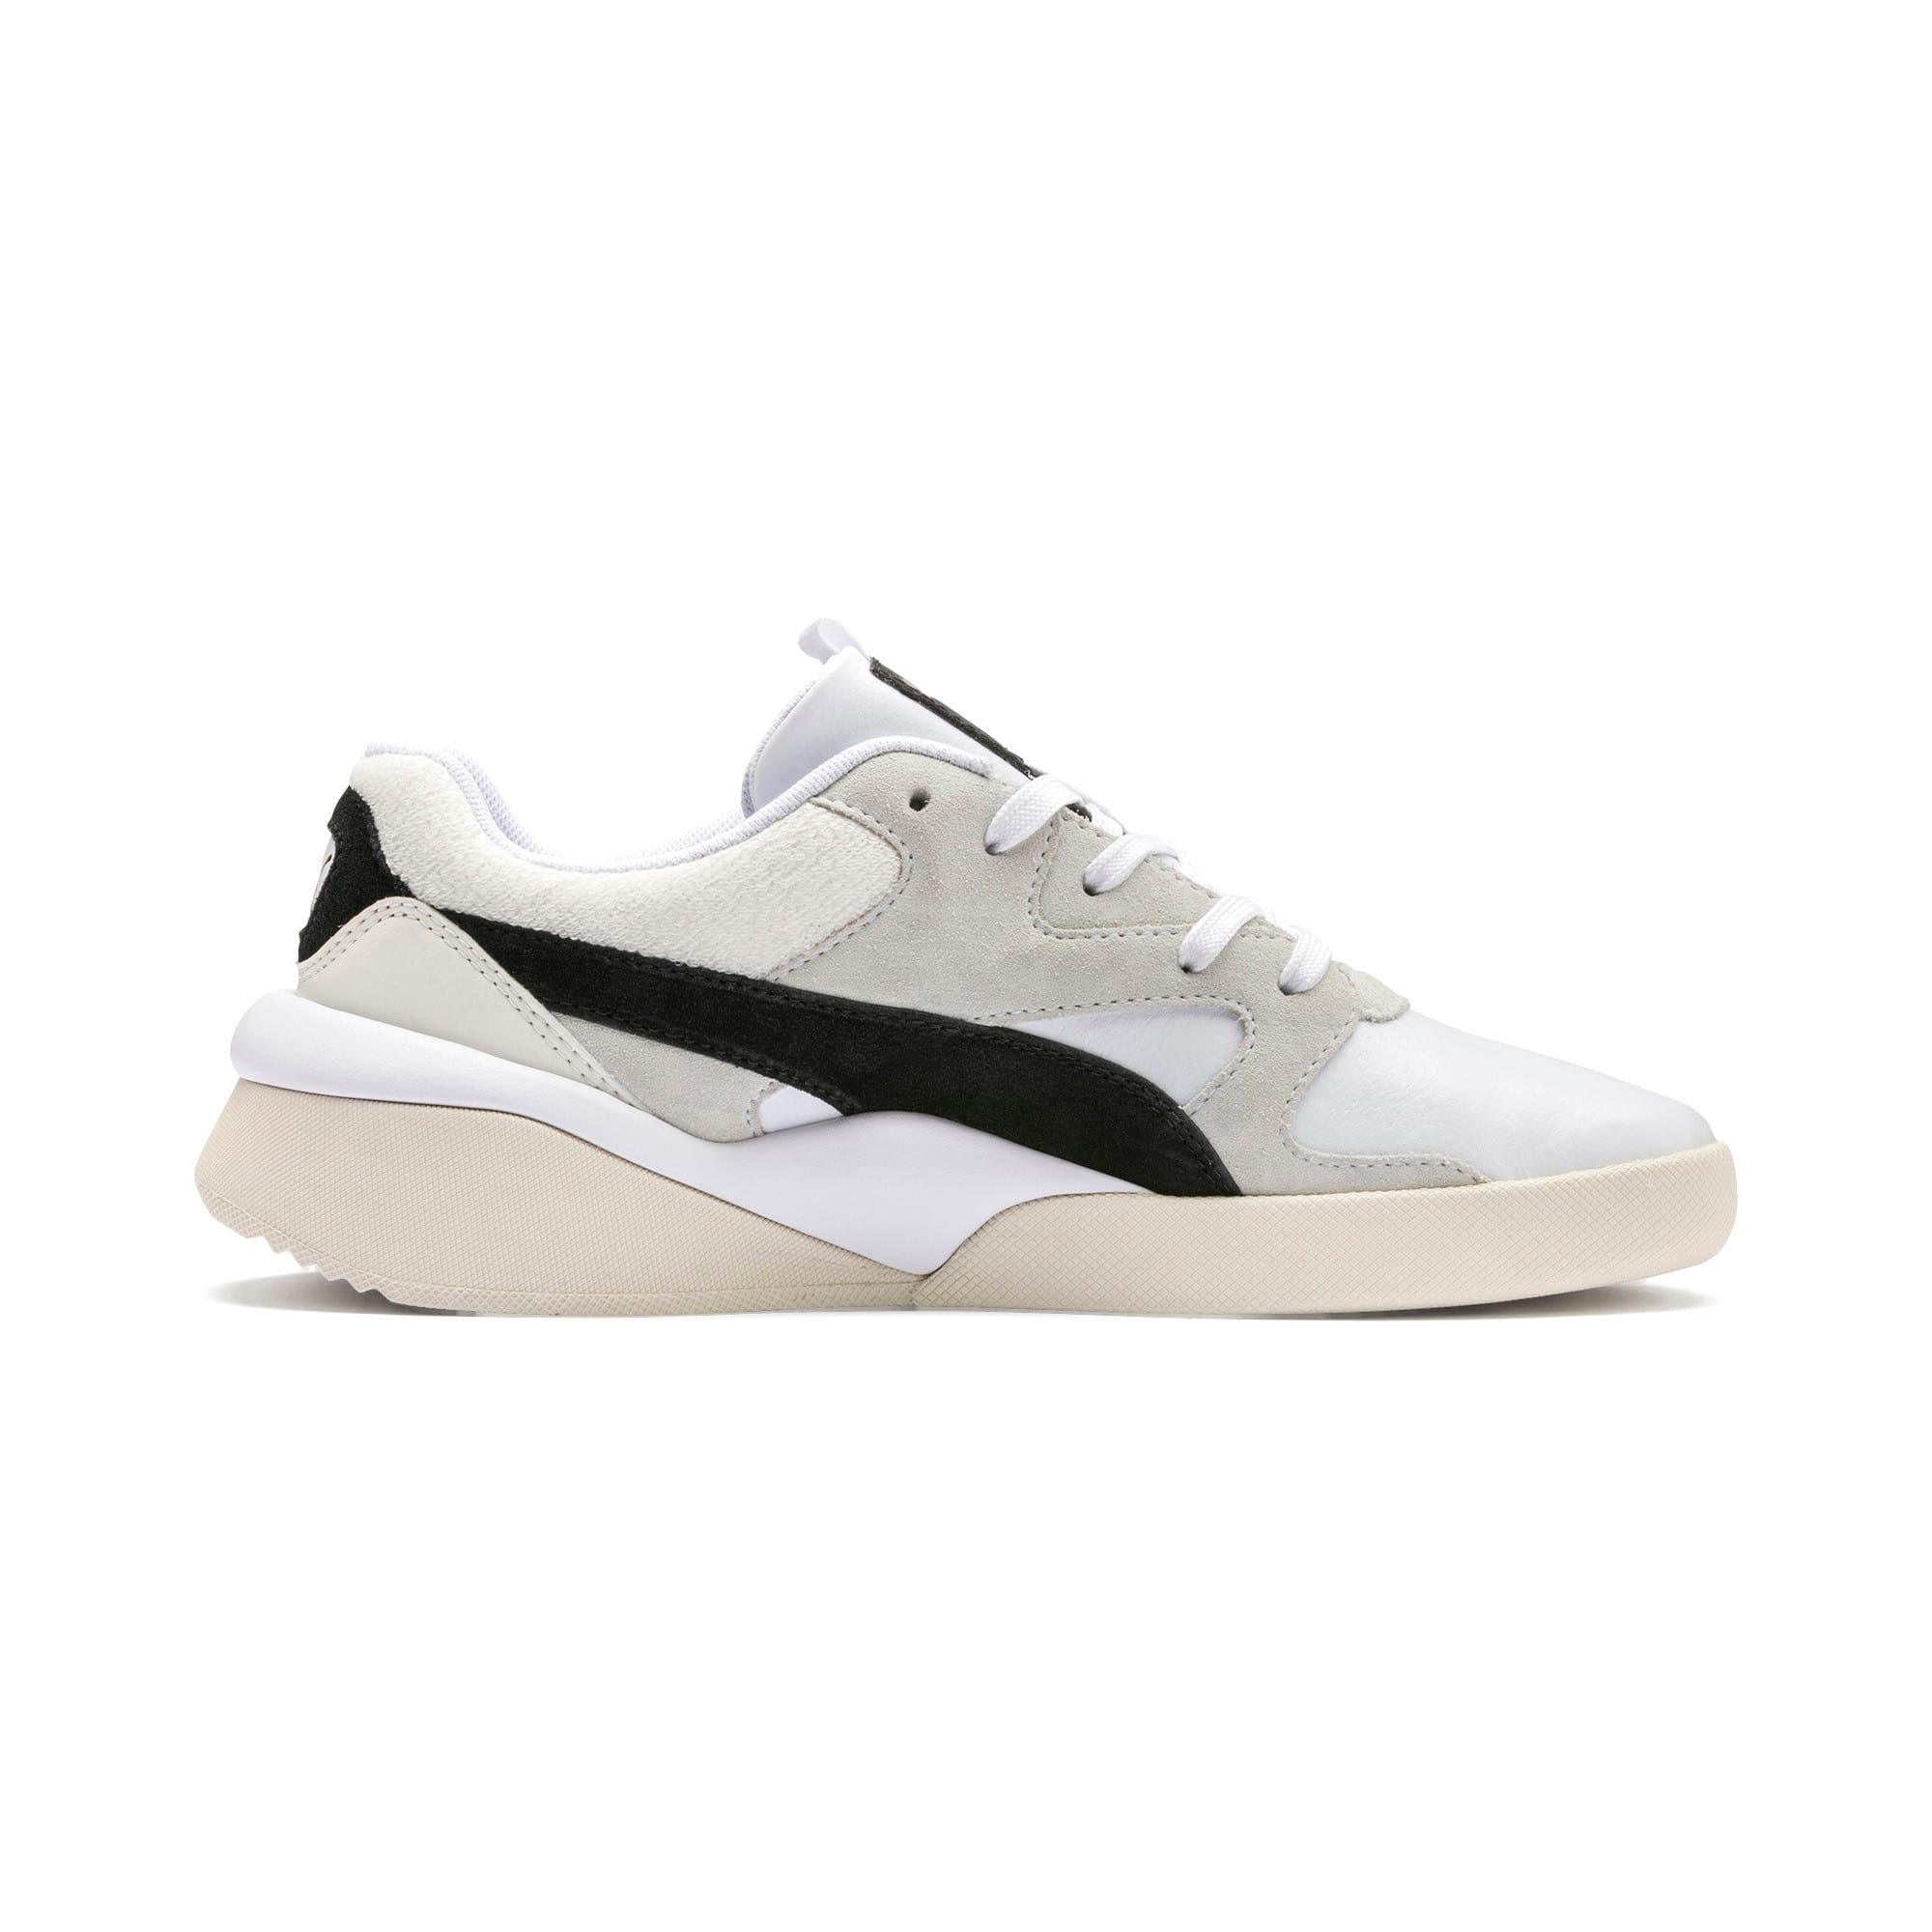 Thumbnail 6 of Aeon Heritage Women's Sneakers, Puma White-Puma Black, medium